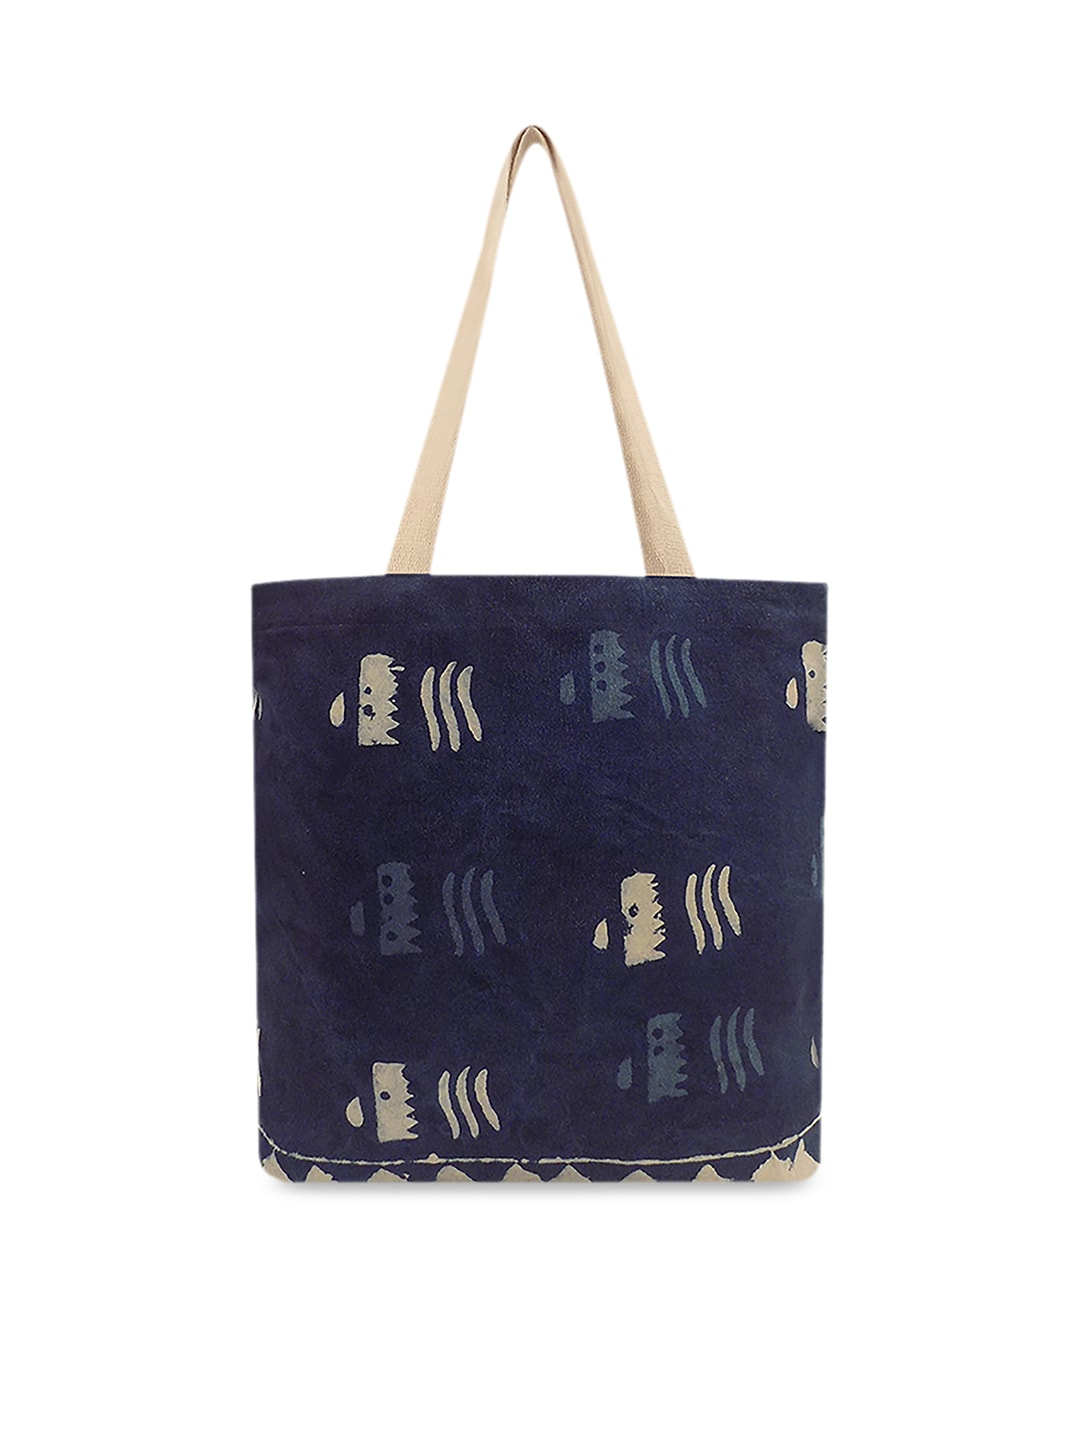 2edbb94c954c Tote Bag - Buy Latest Tote Bags For Women & Girls Online | Myntra